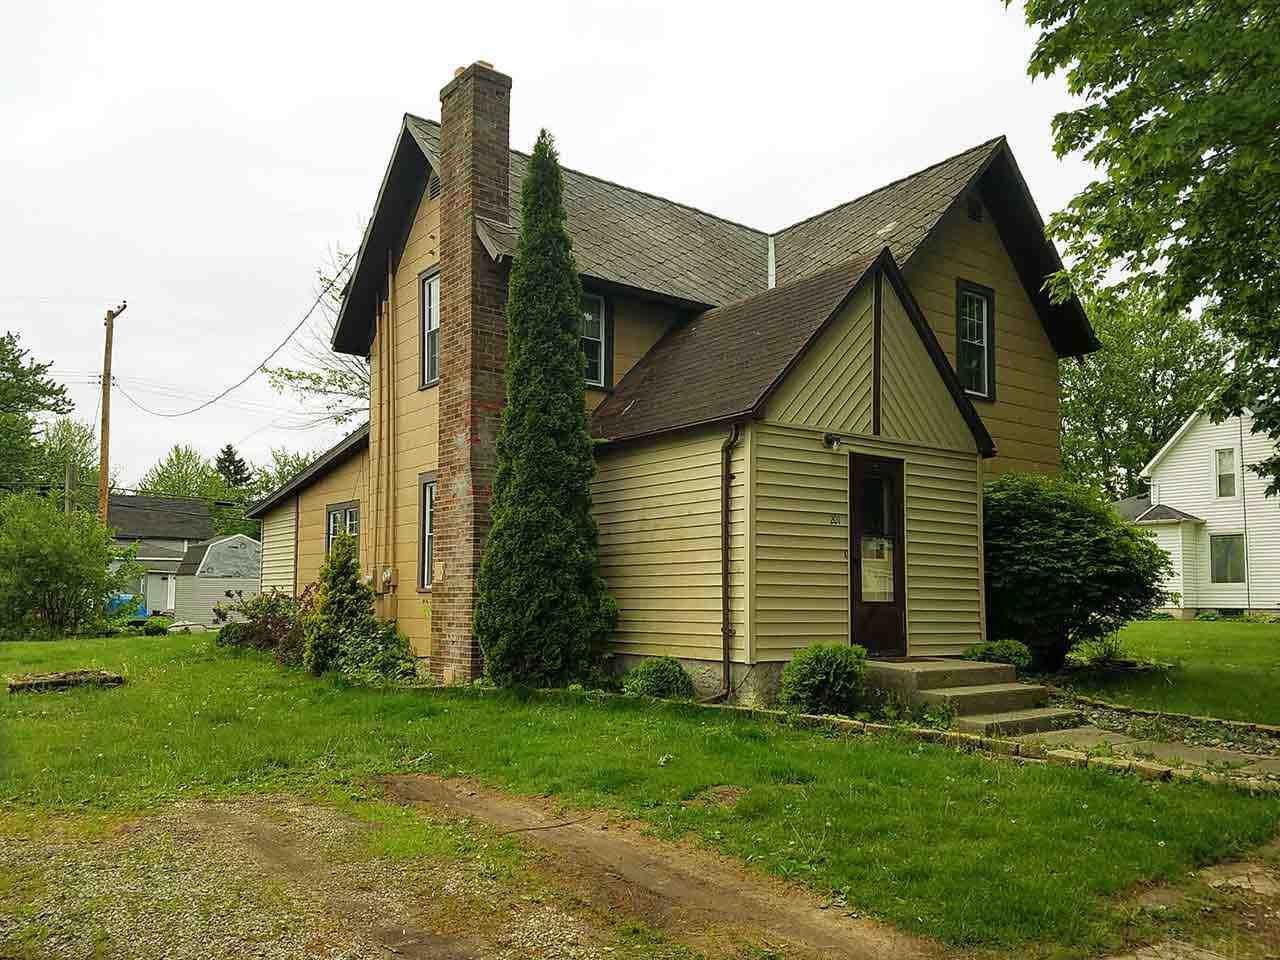 129 S Grand Ave, Ashley, IN